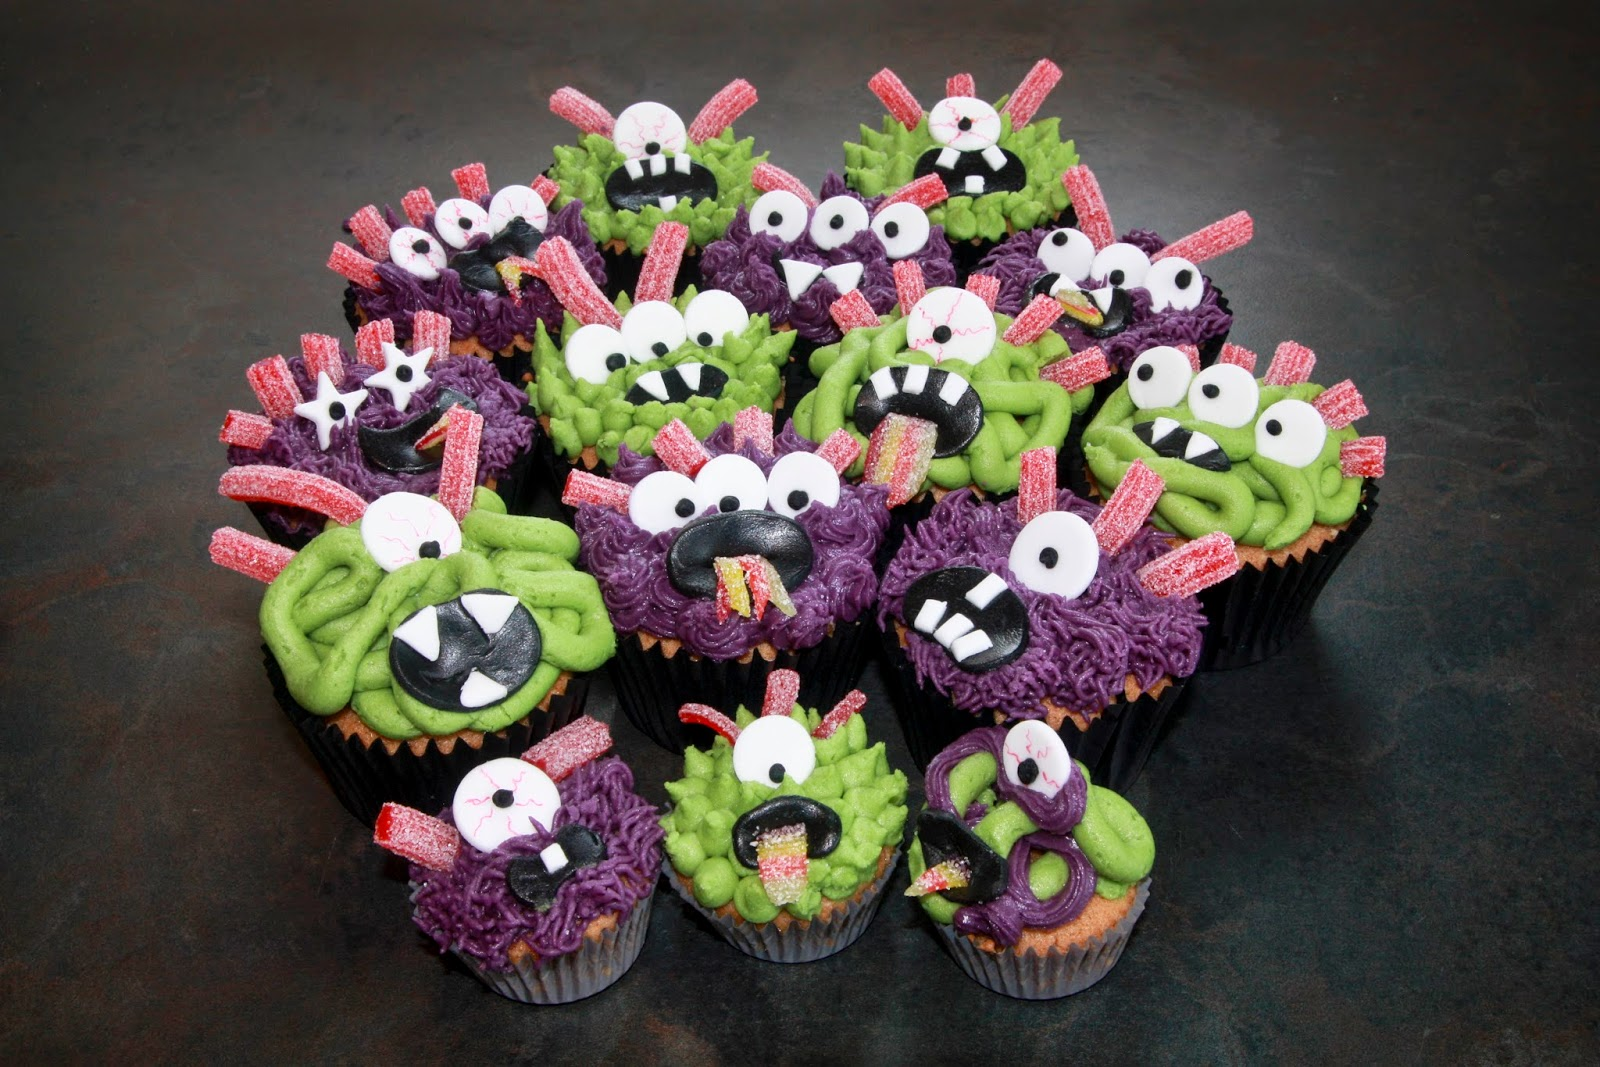 Purple and green monster cupcakes